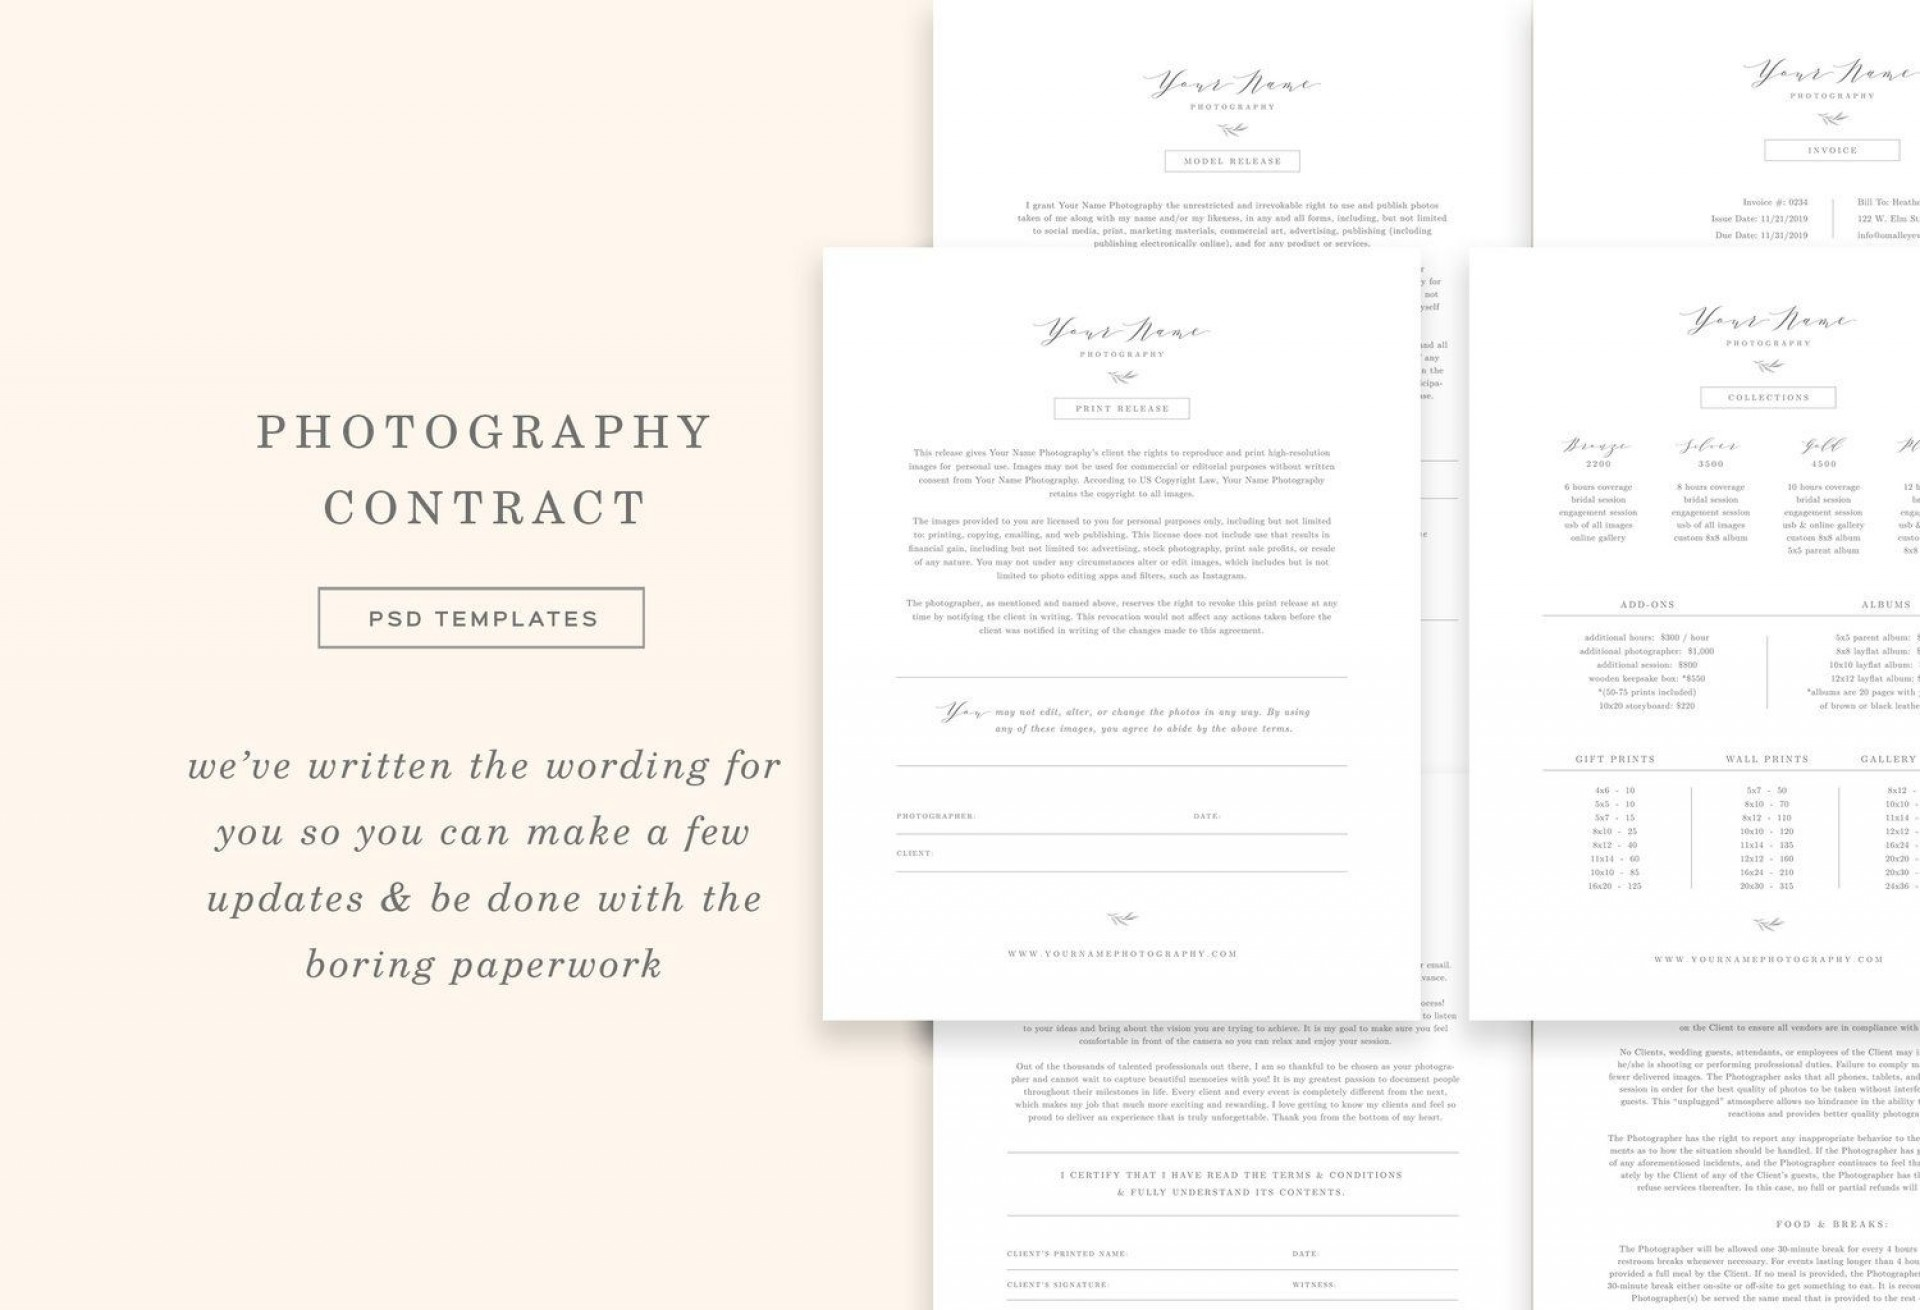 008 Staggering Wedding Photographer Contract Template Free Photo  Simple Photography Word1920